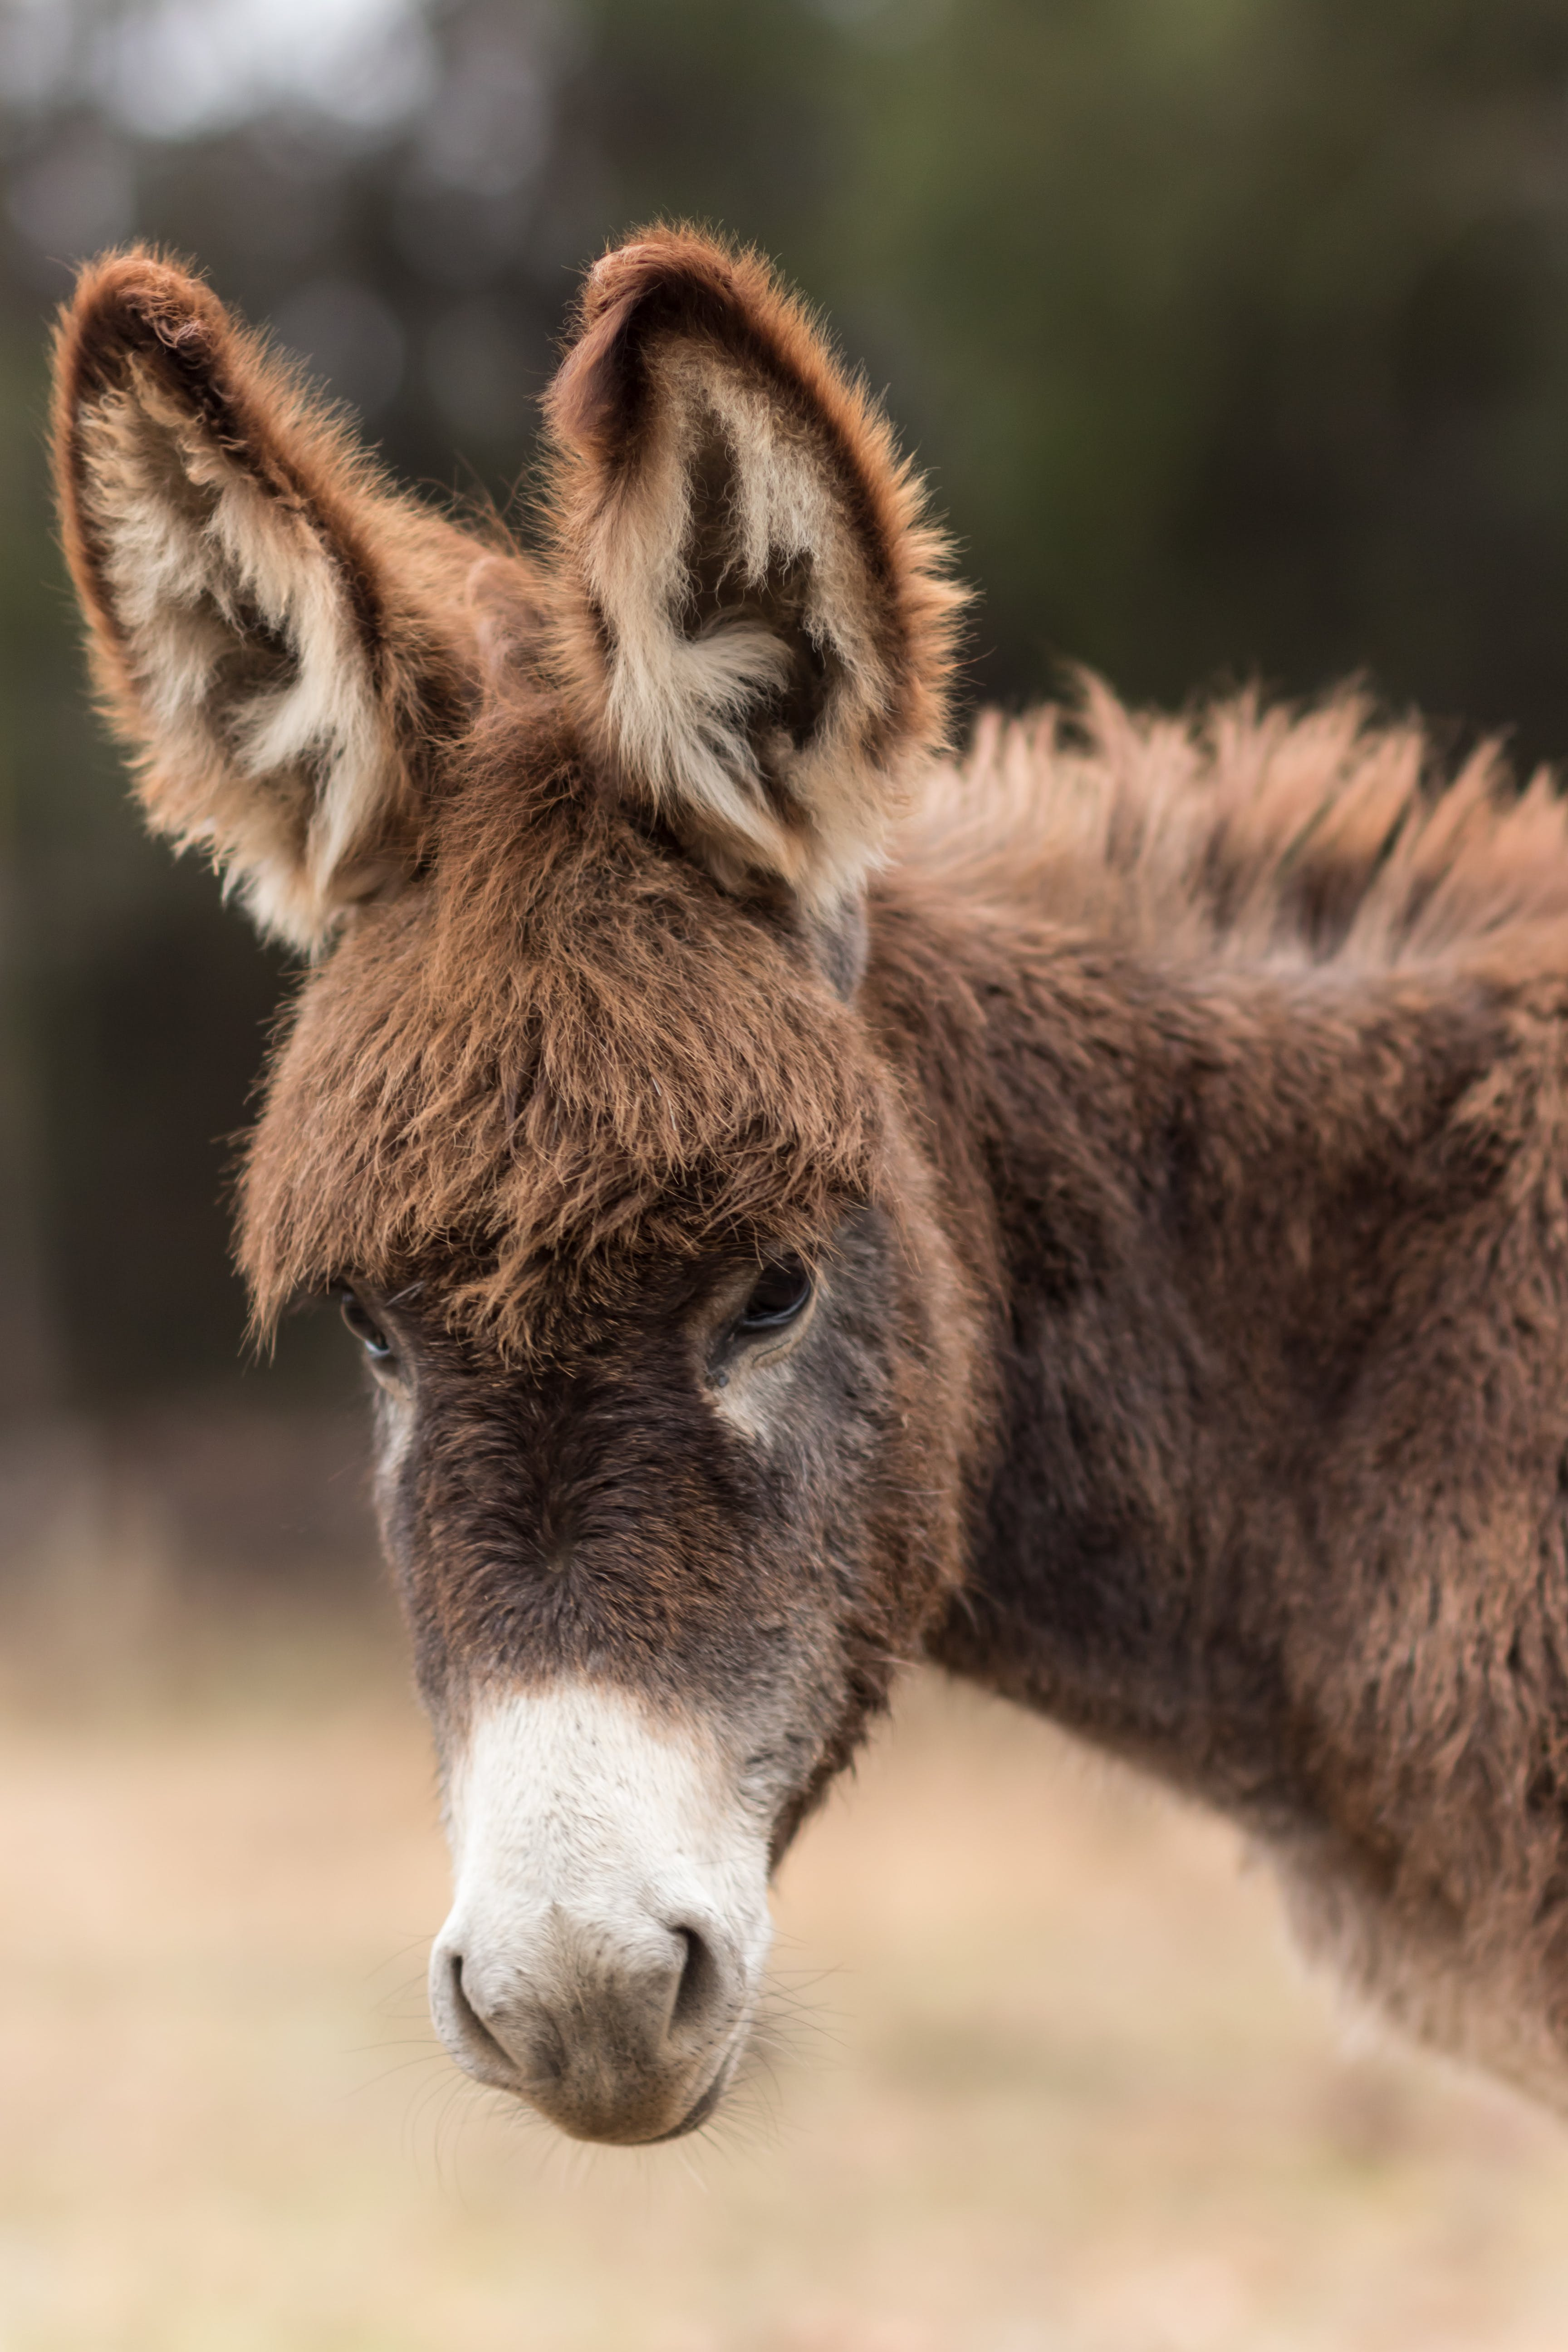 Shallow Focus Photography of Brown and White Donkey